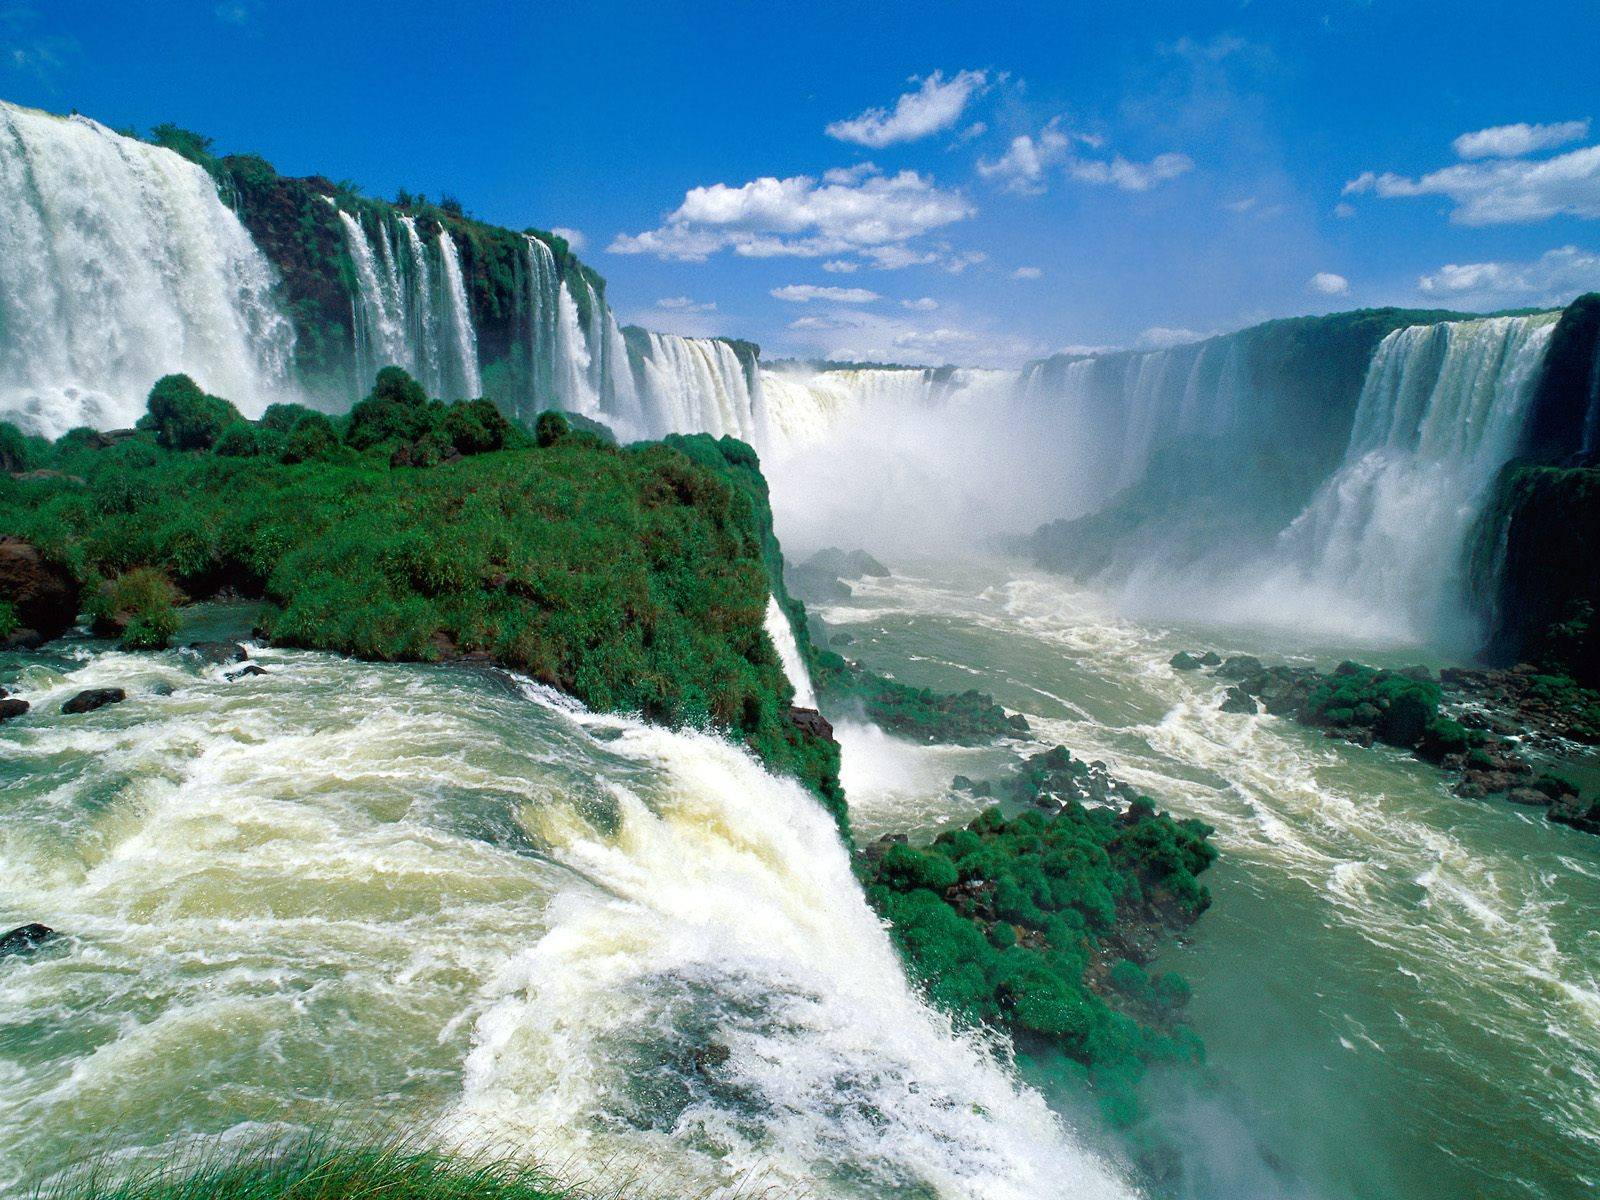 http://www.travelblat.com/wp-content/uploads/2011/08/Natural-Wonder-of-Iguazu-Falls.jpg